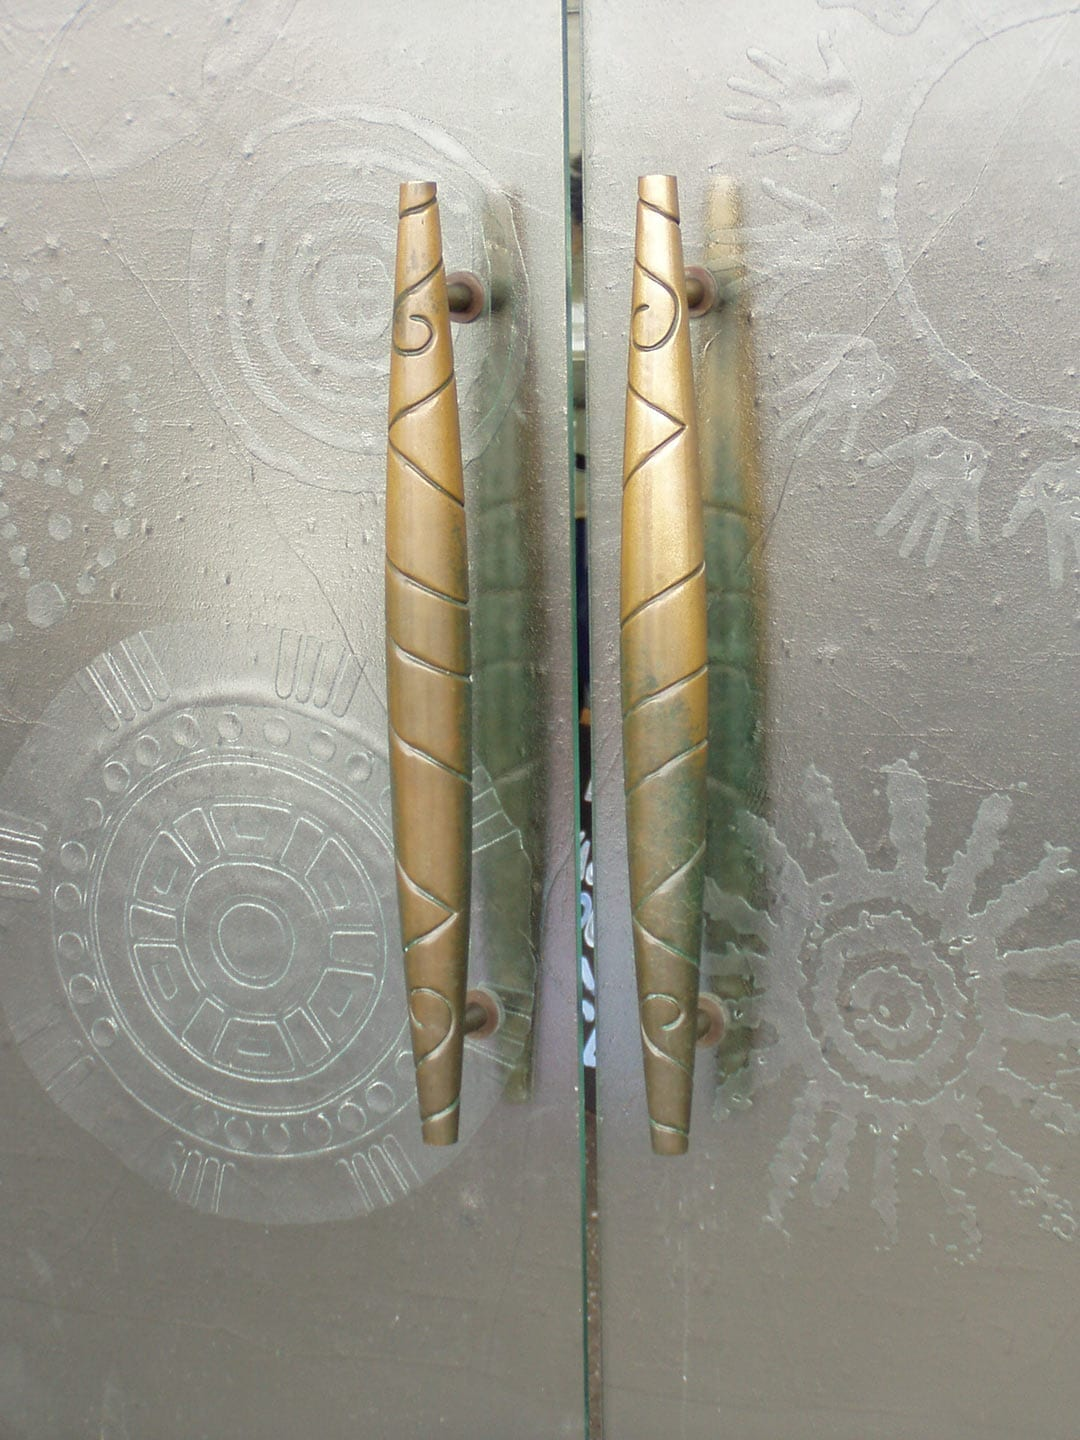 Custom Door Handles at the National Museum of the American Indian in Washington D.C.